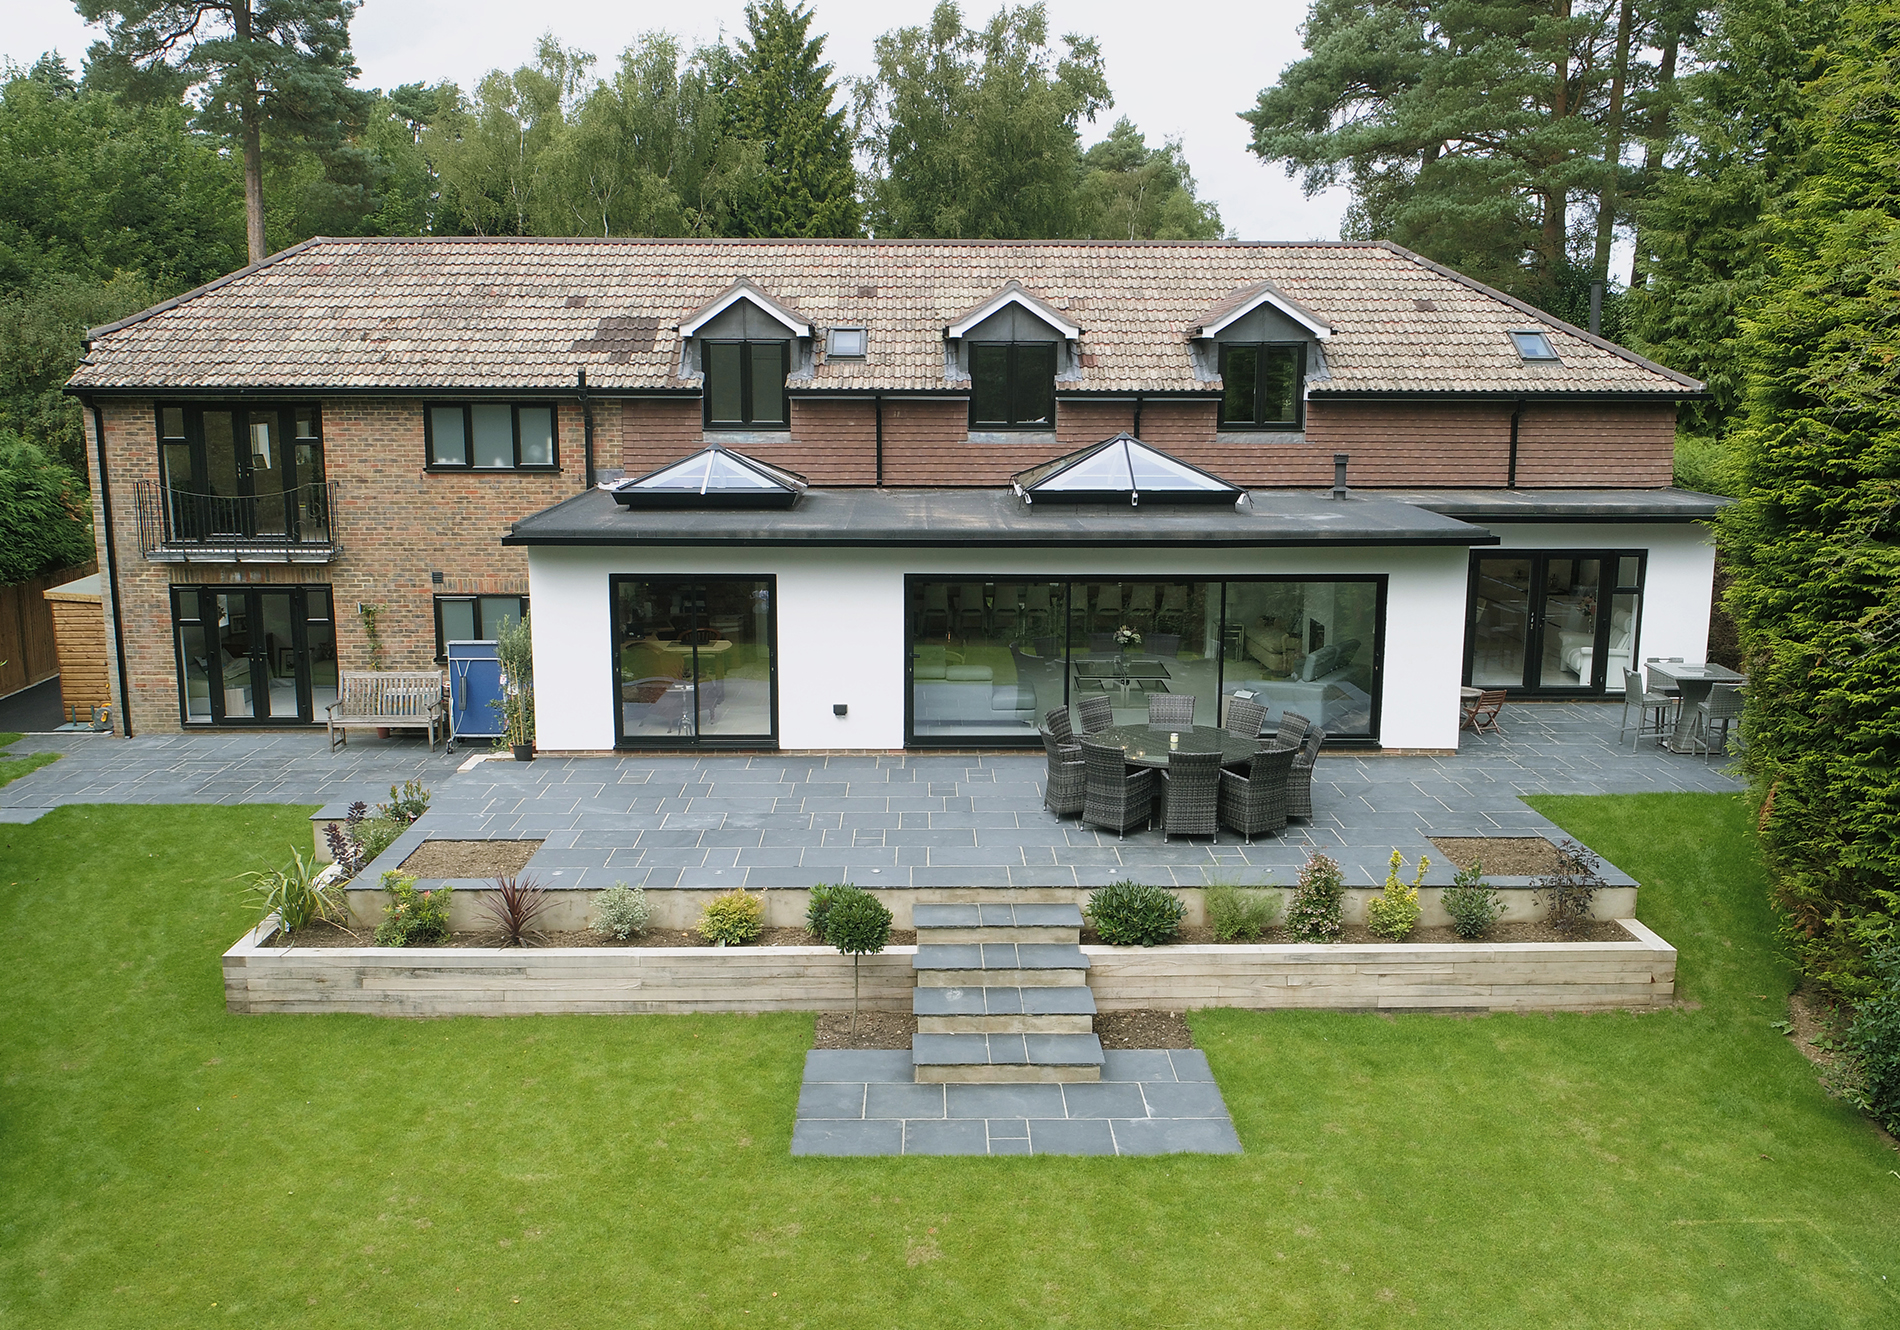 Kingswood Firs aerial shot, featuring EdgeGlide and Veka French Doors